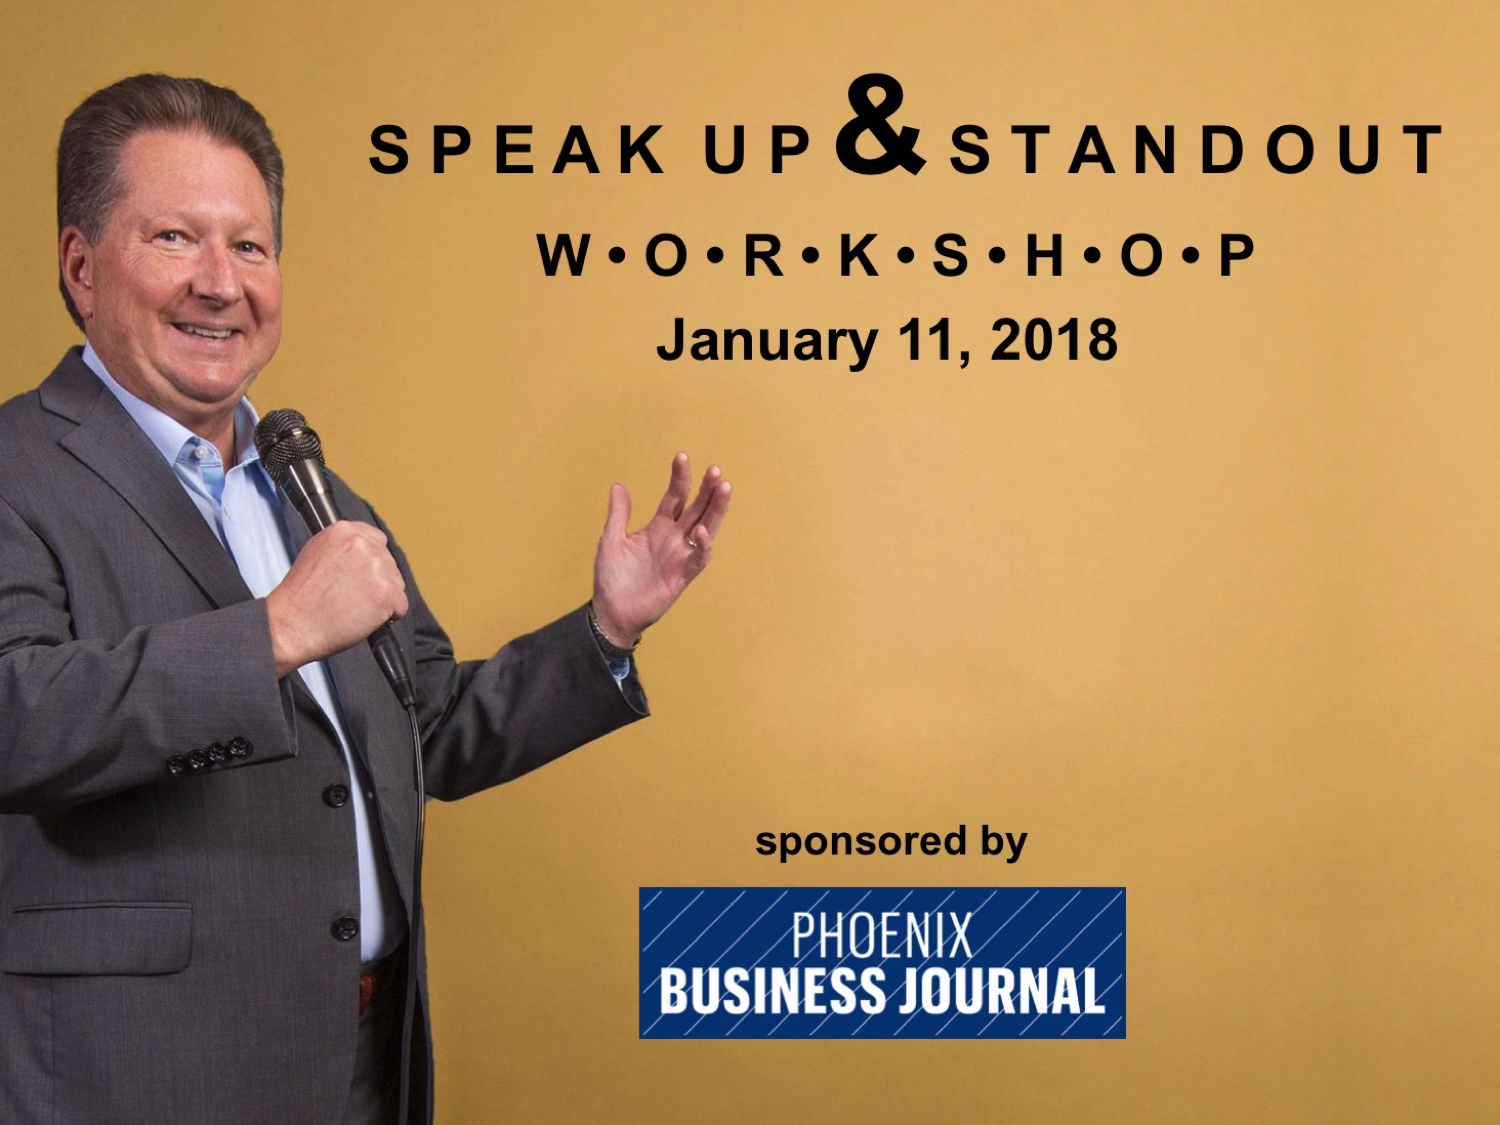 Phoenix Public Speaking Business Journal. Speak up & Standout workshop. January 11, 2018. Sponsored by Phoenix Business Journal.